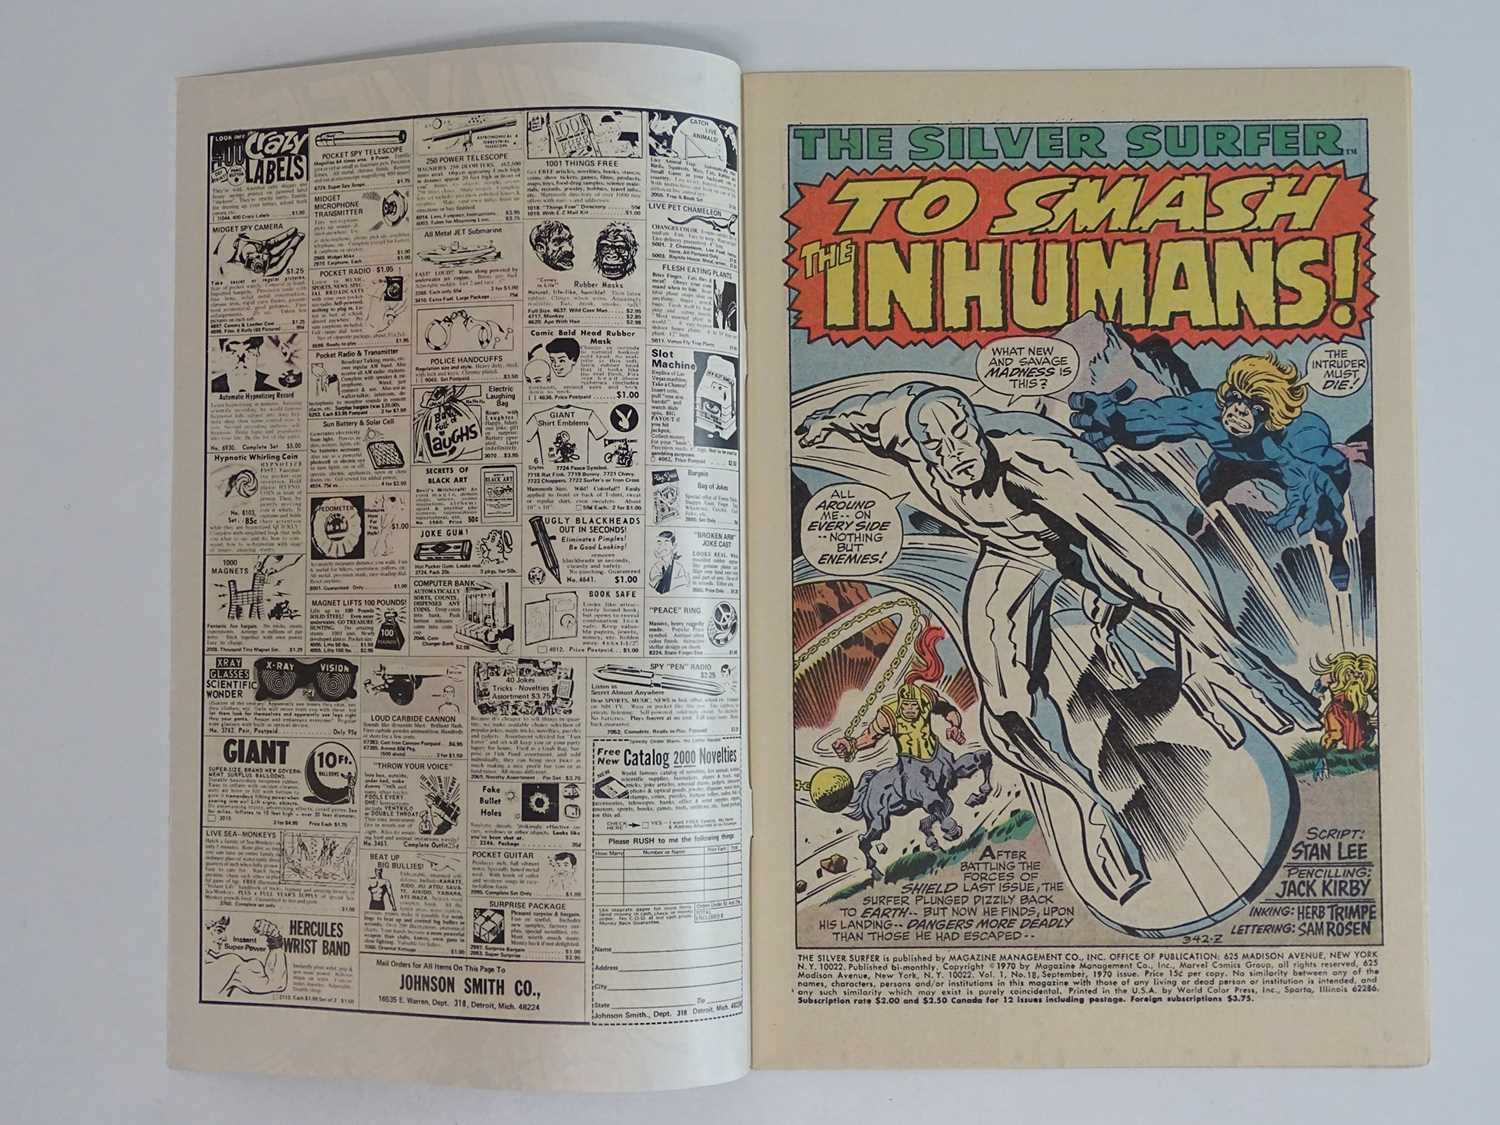 SILVER SURFER #18 - (1970 - MARVEL) - Inhumans appearance + Last issue of the title - Jack Kirby - Image 3 of 9